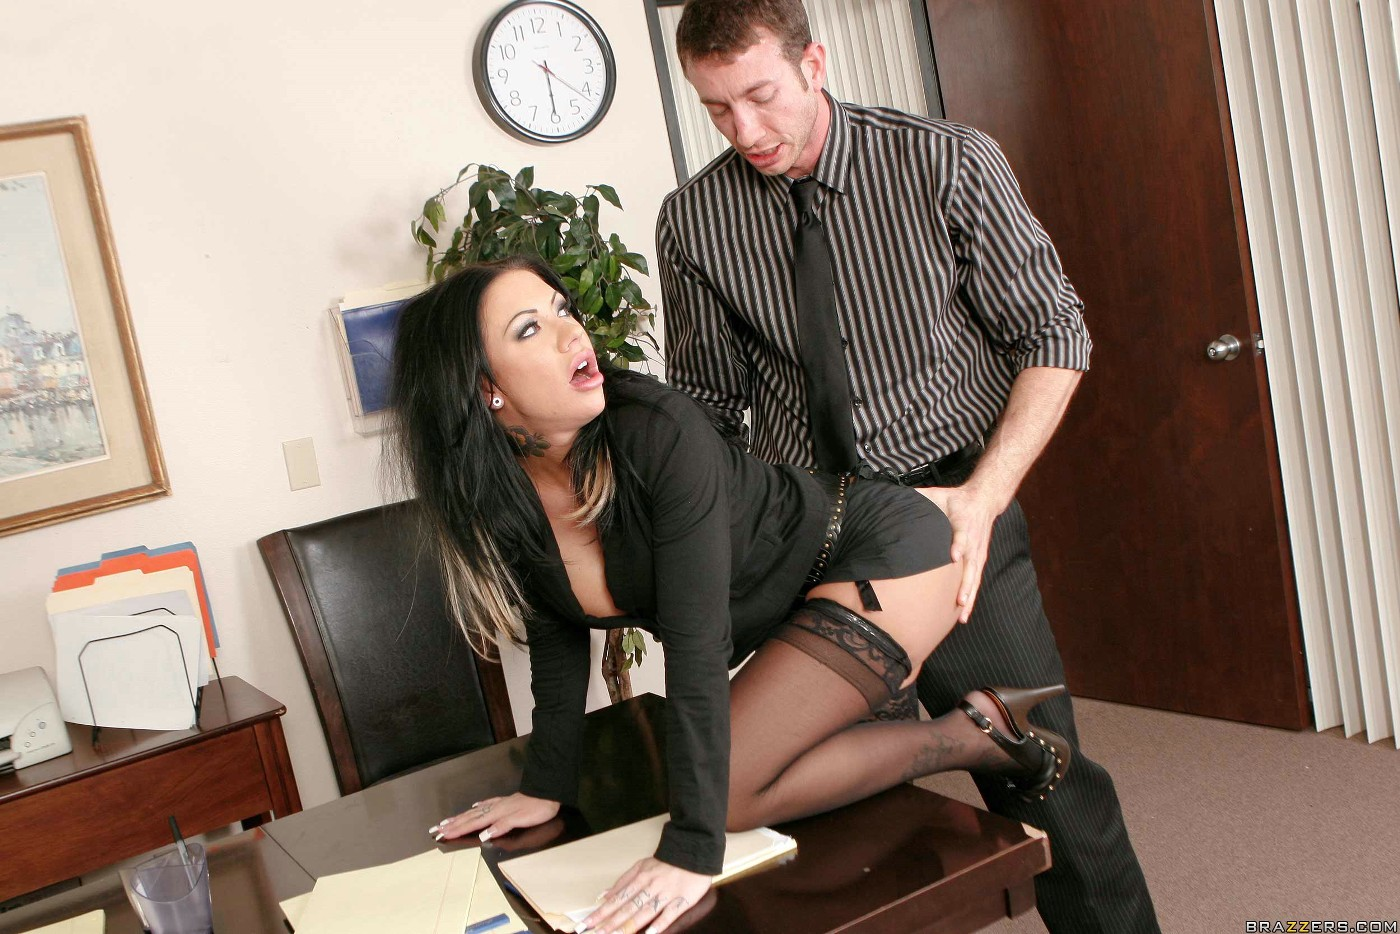 Leggy blonde gets pounded by stud wearing her high boots 10